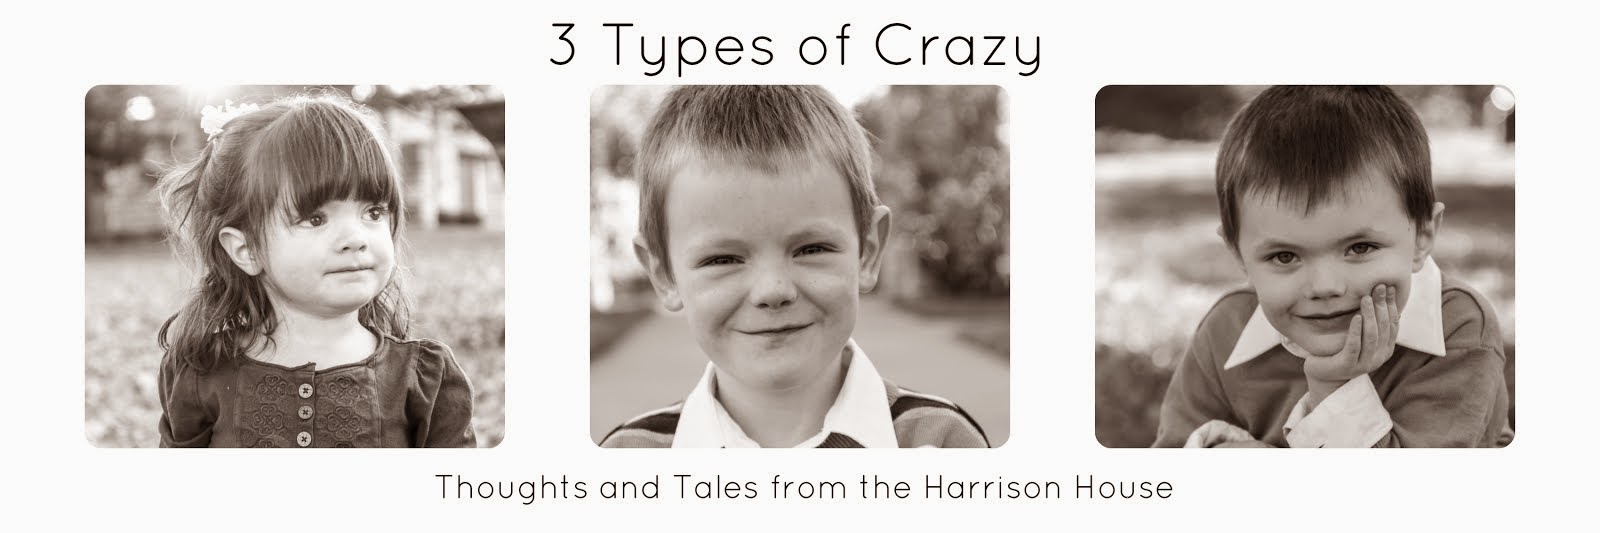 3 Types of Crazy